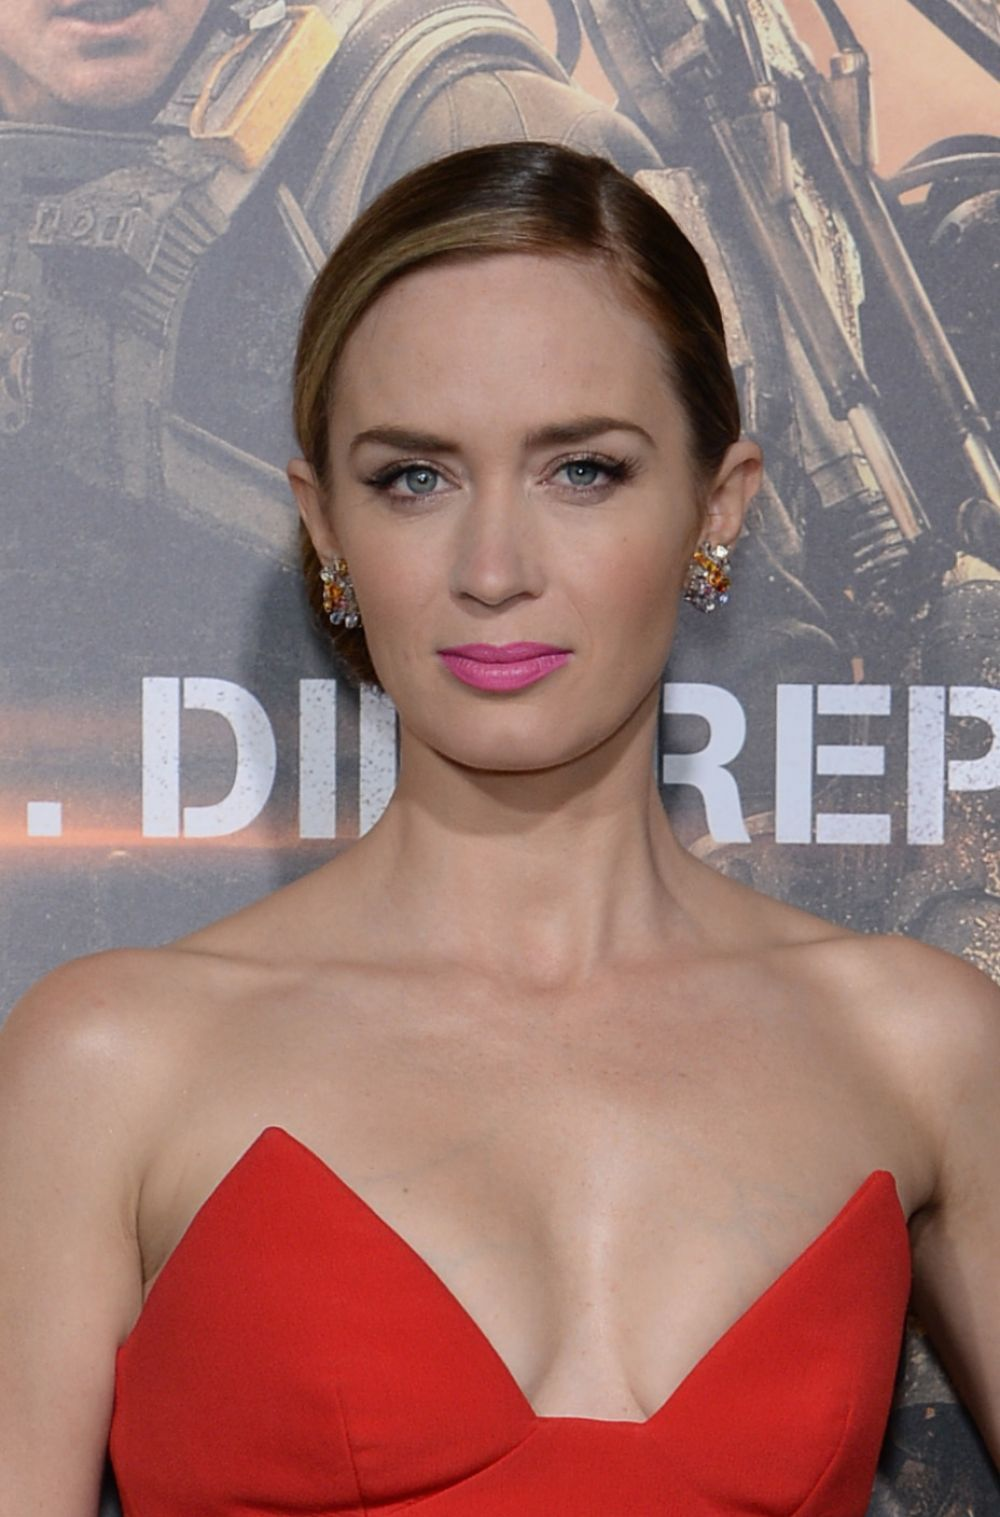 Communication on this topic: Eliza Schneider, emily-blunt-born-1983-naturalized-american-citizen/